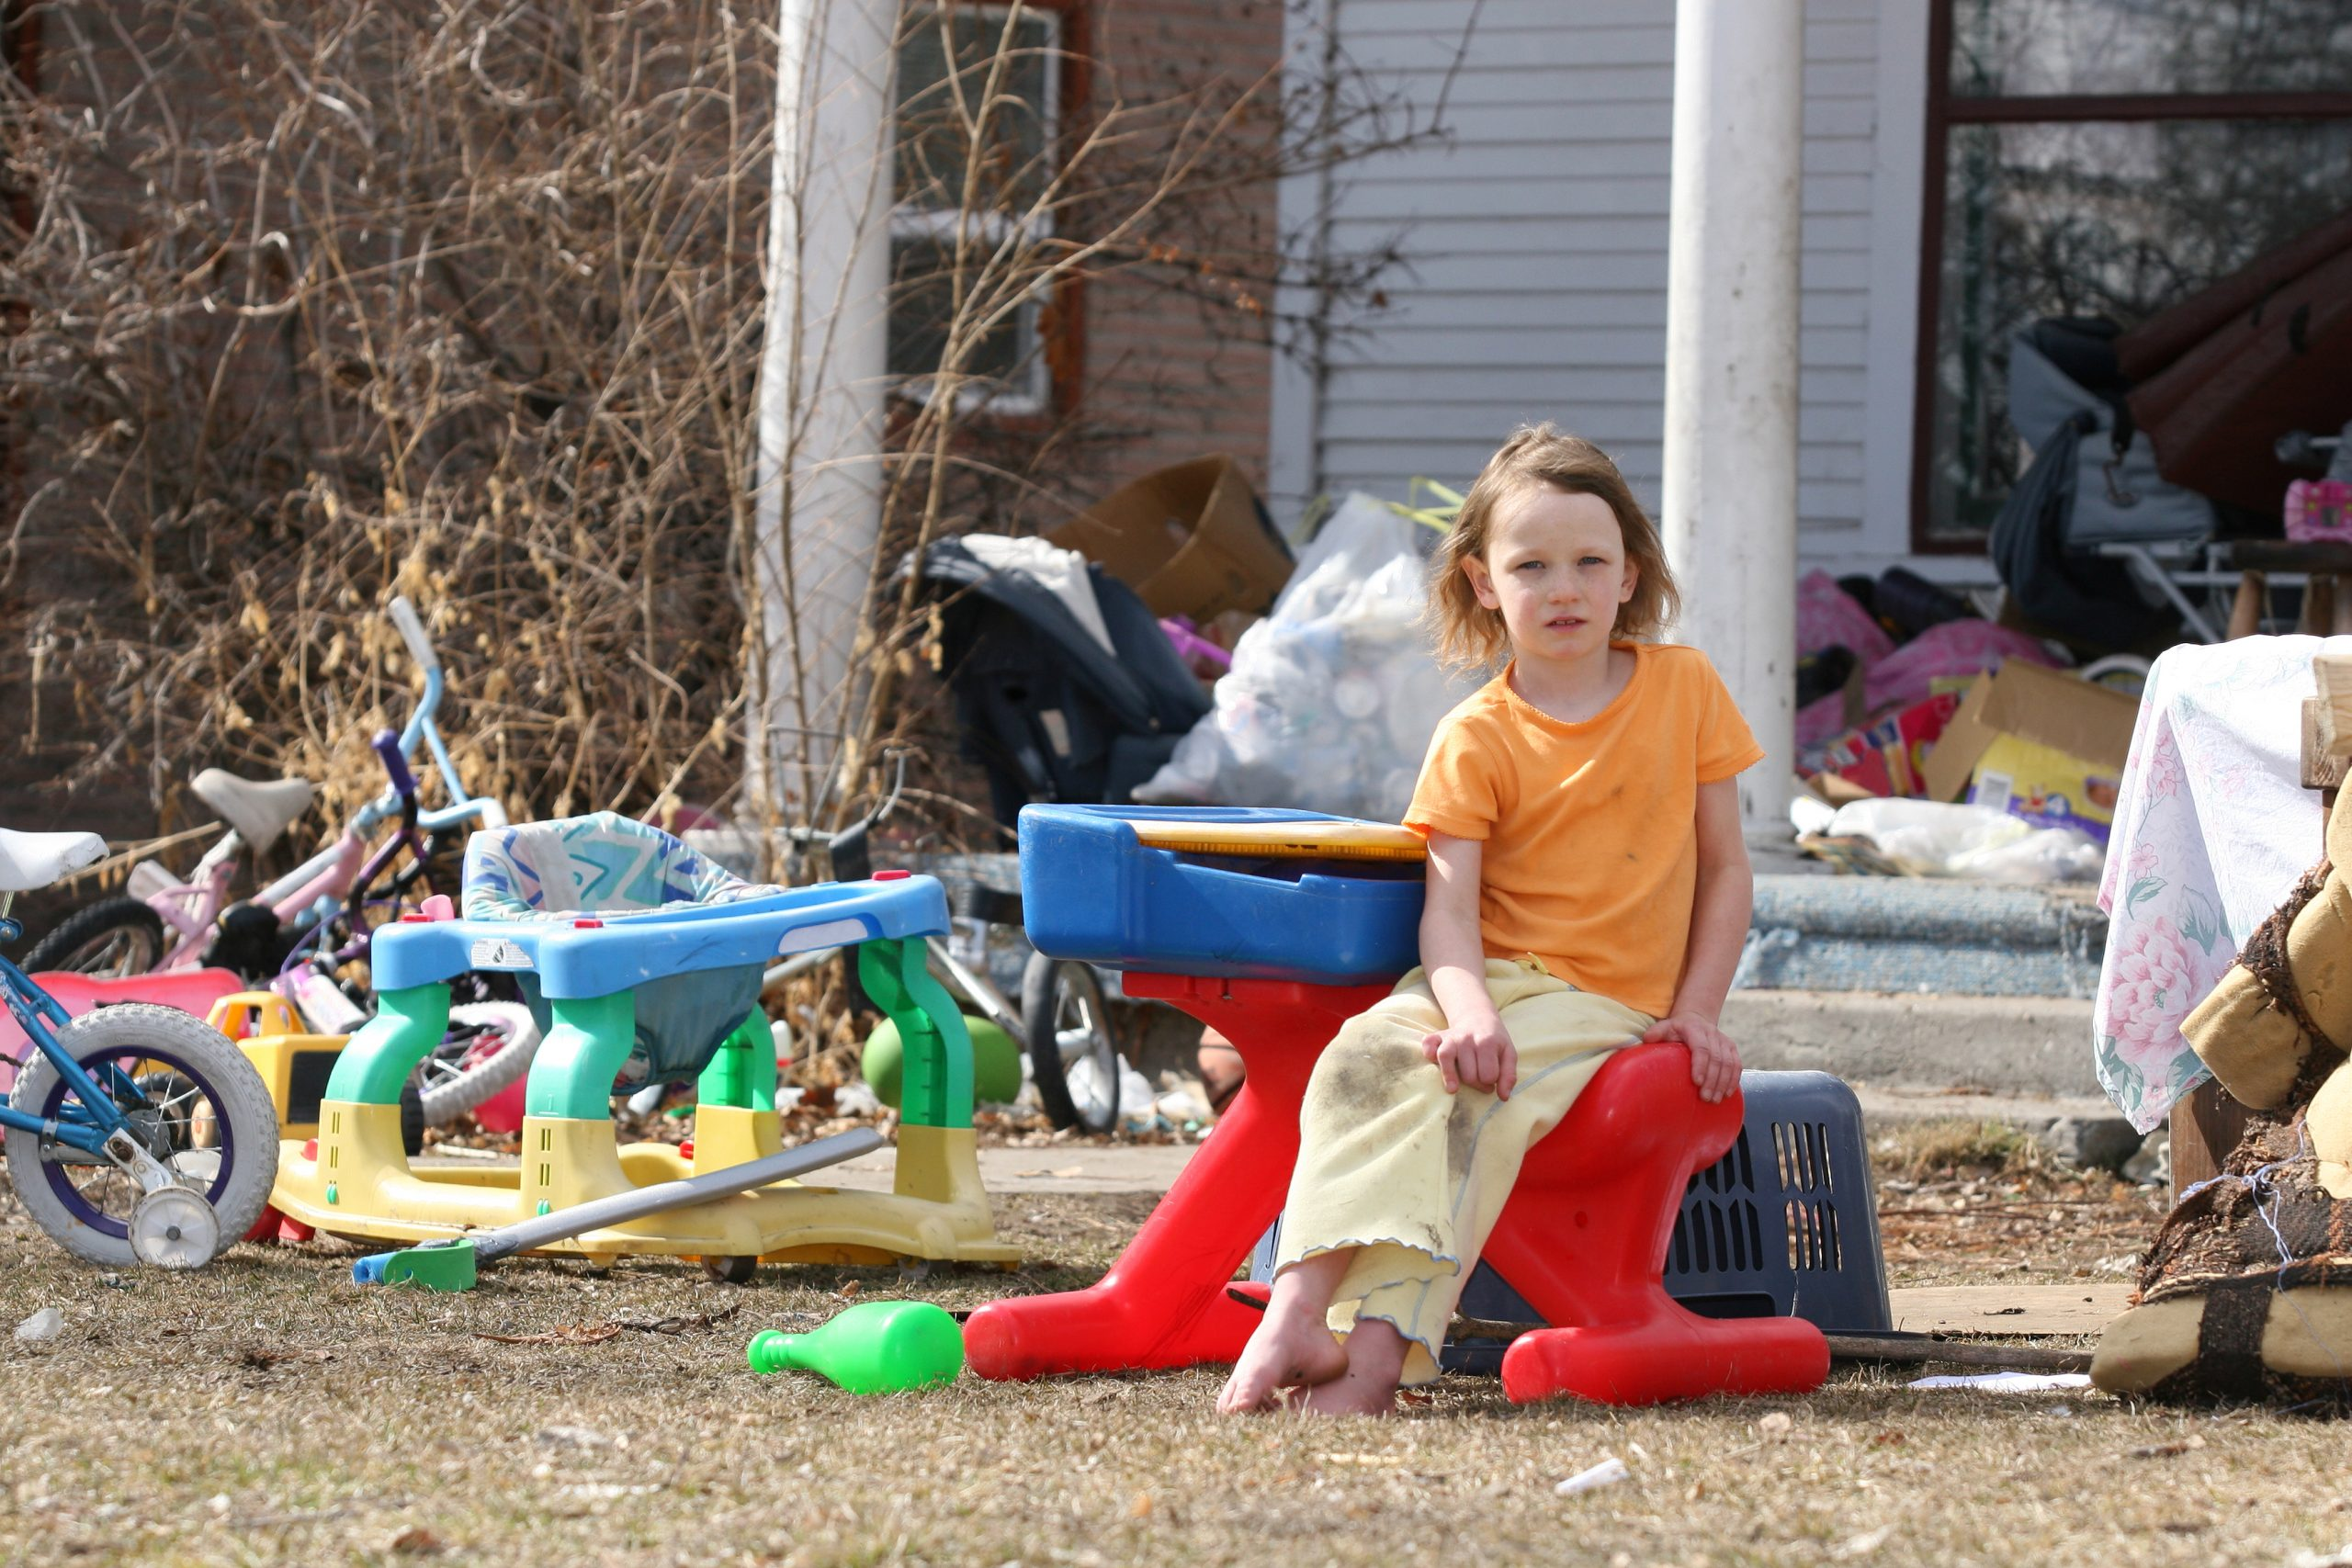 Little girl sits surrounded by junk on the front lawn of a rundown home